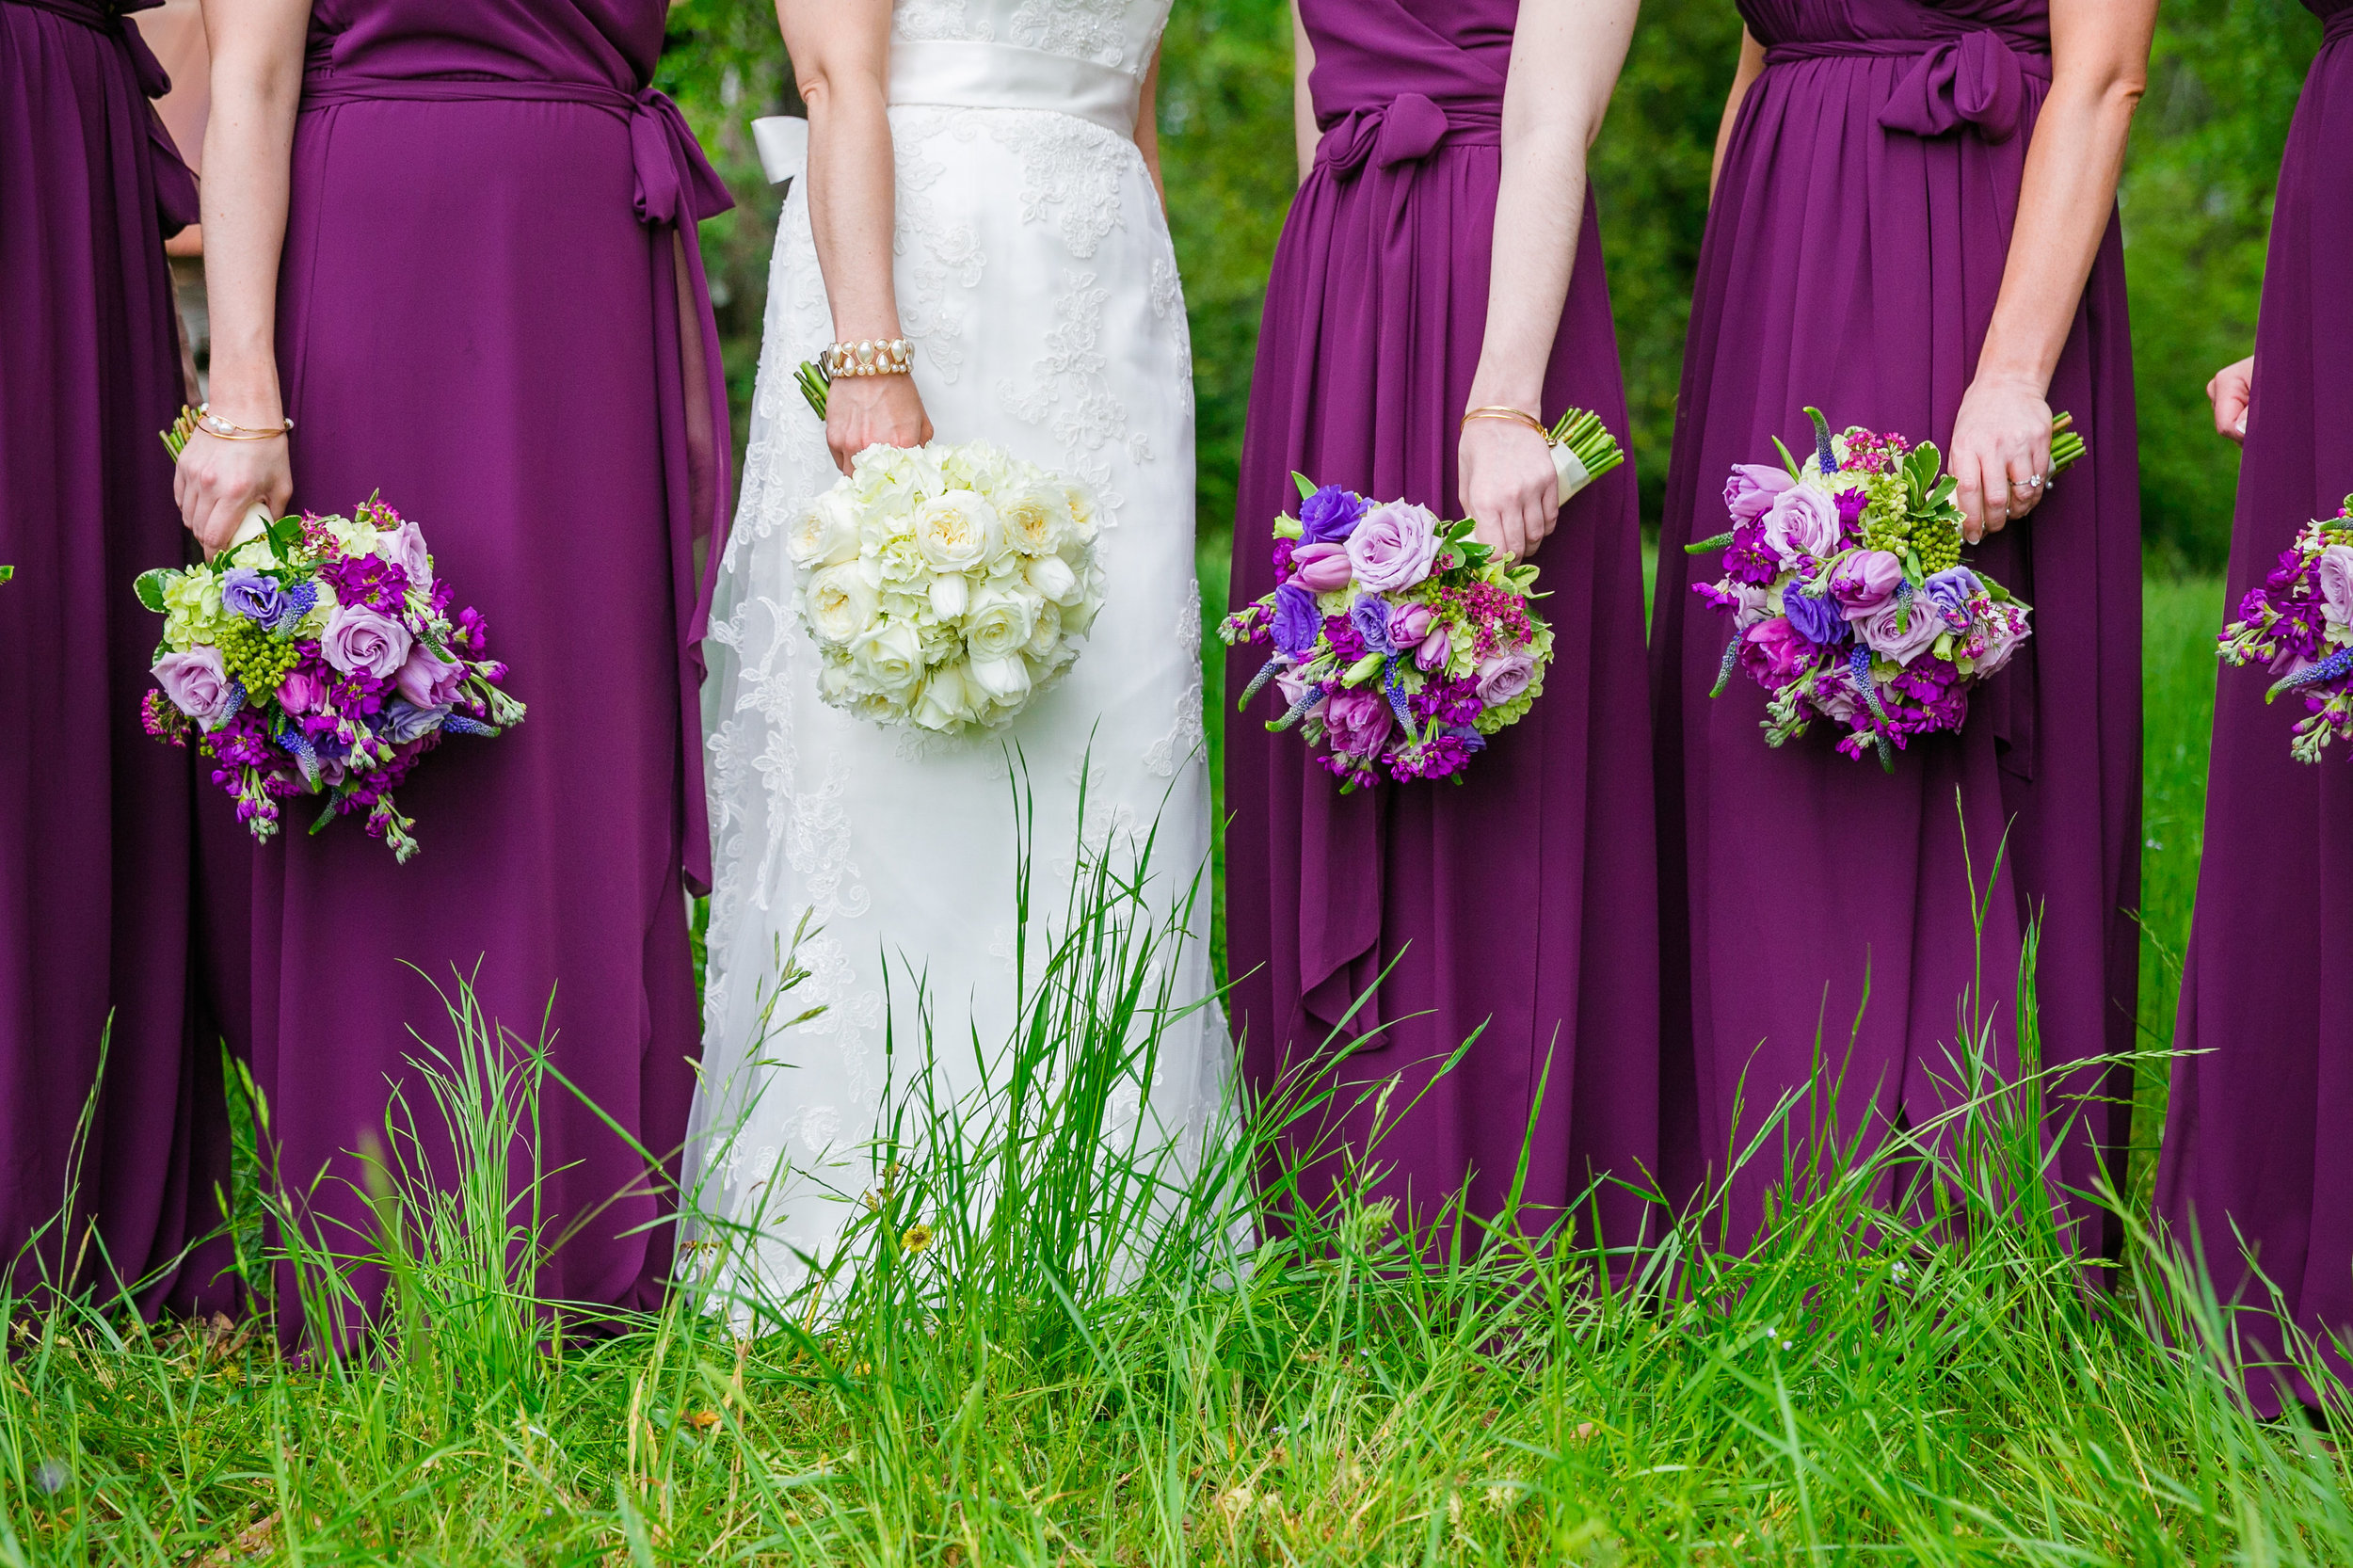 fuchsia-and-wine-bella-bridesmaids-wildberry-farm-barn-wedding-fuchsia-wedding-bouquet-sweetgrass-social-wedding-dana-cubbage